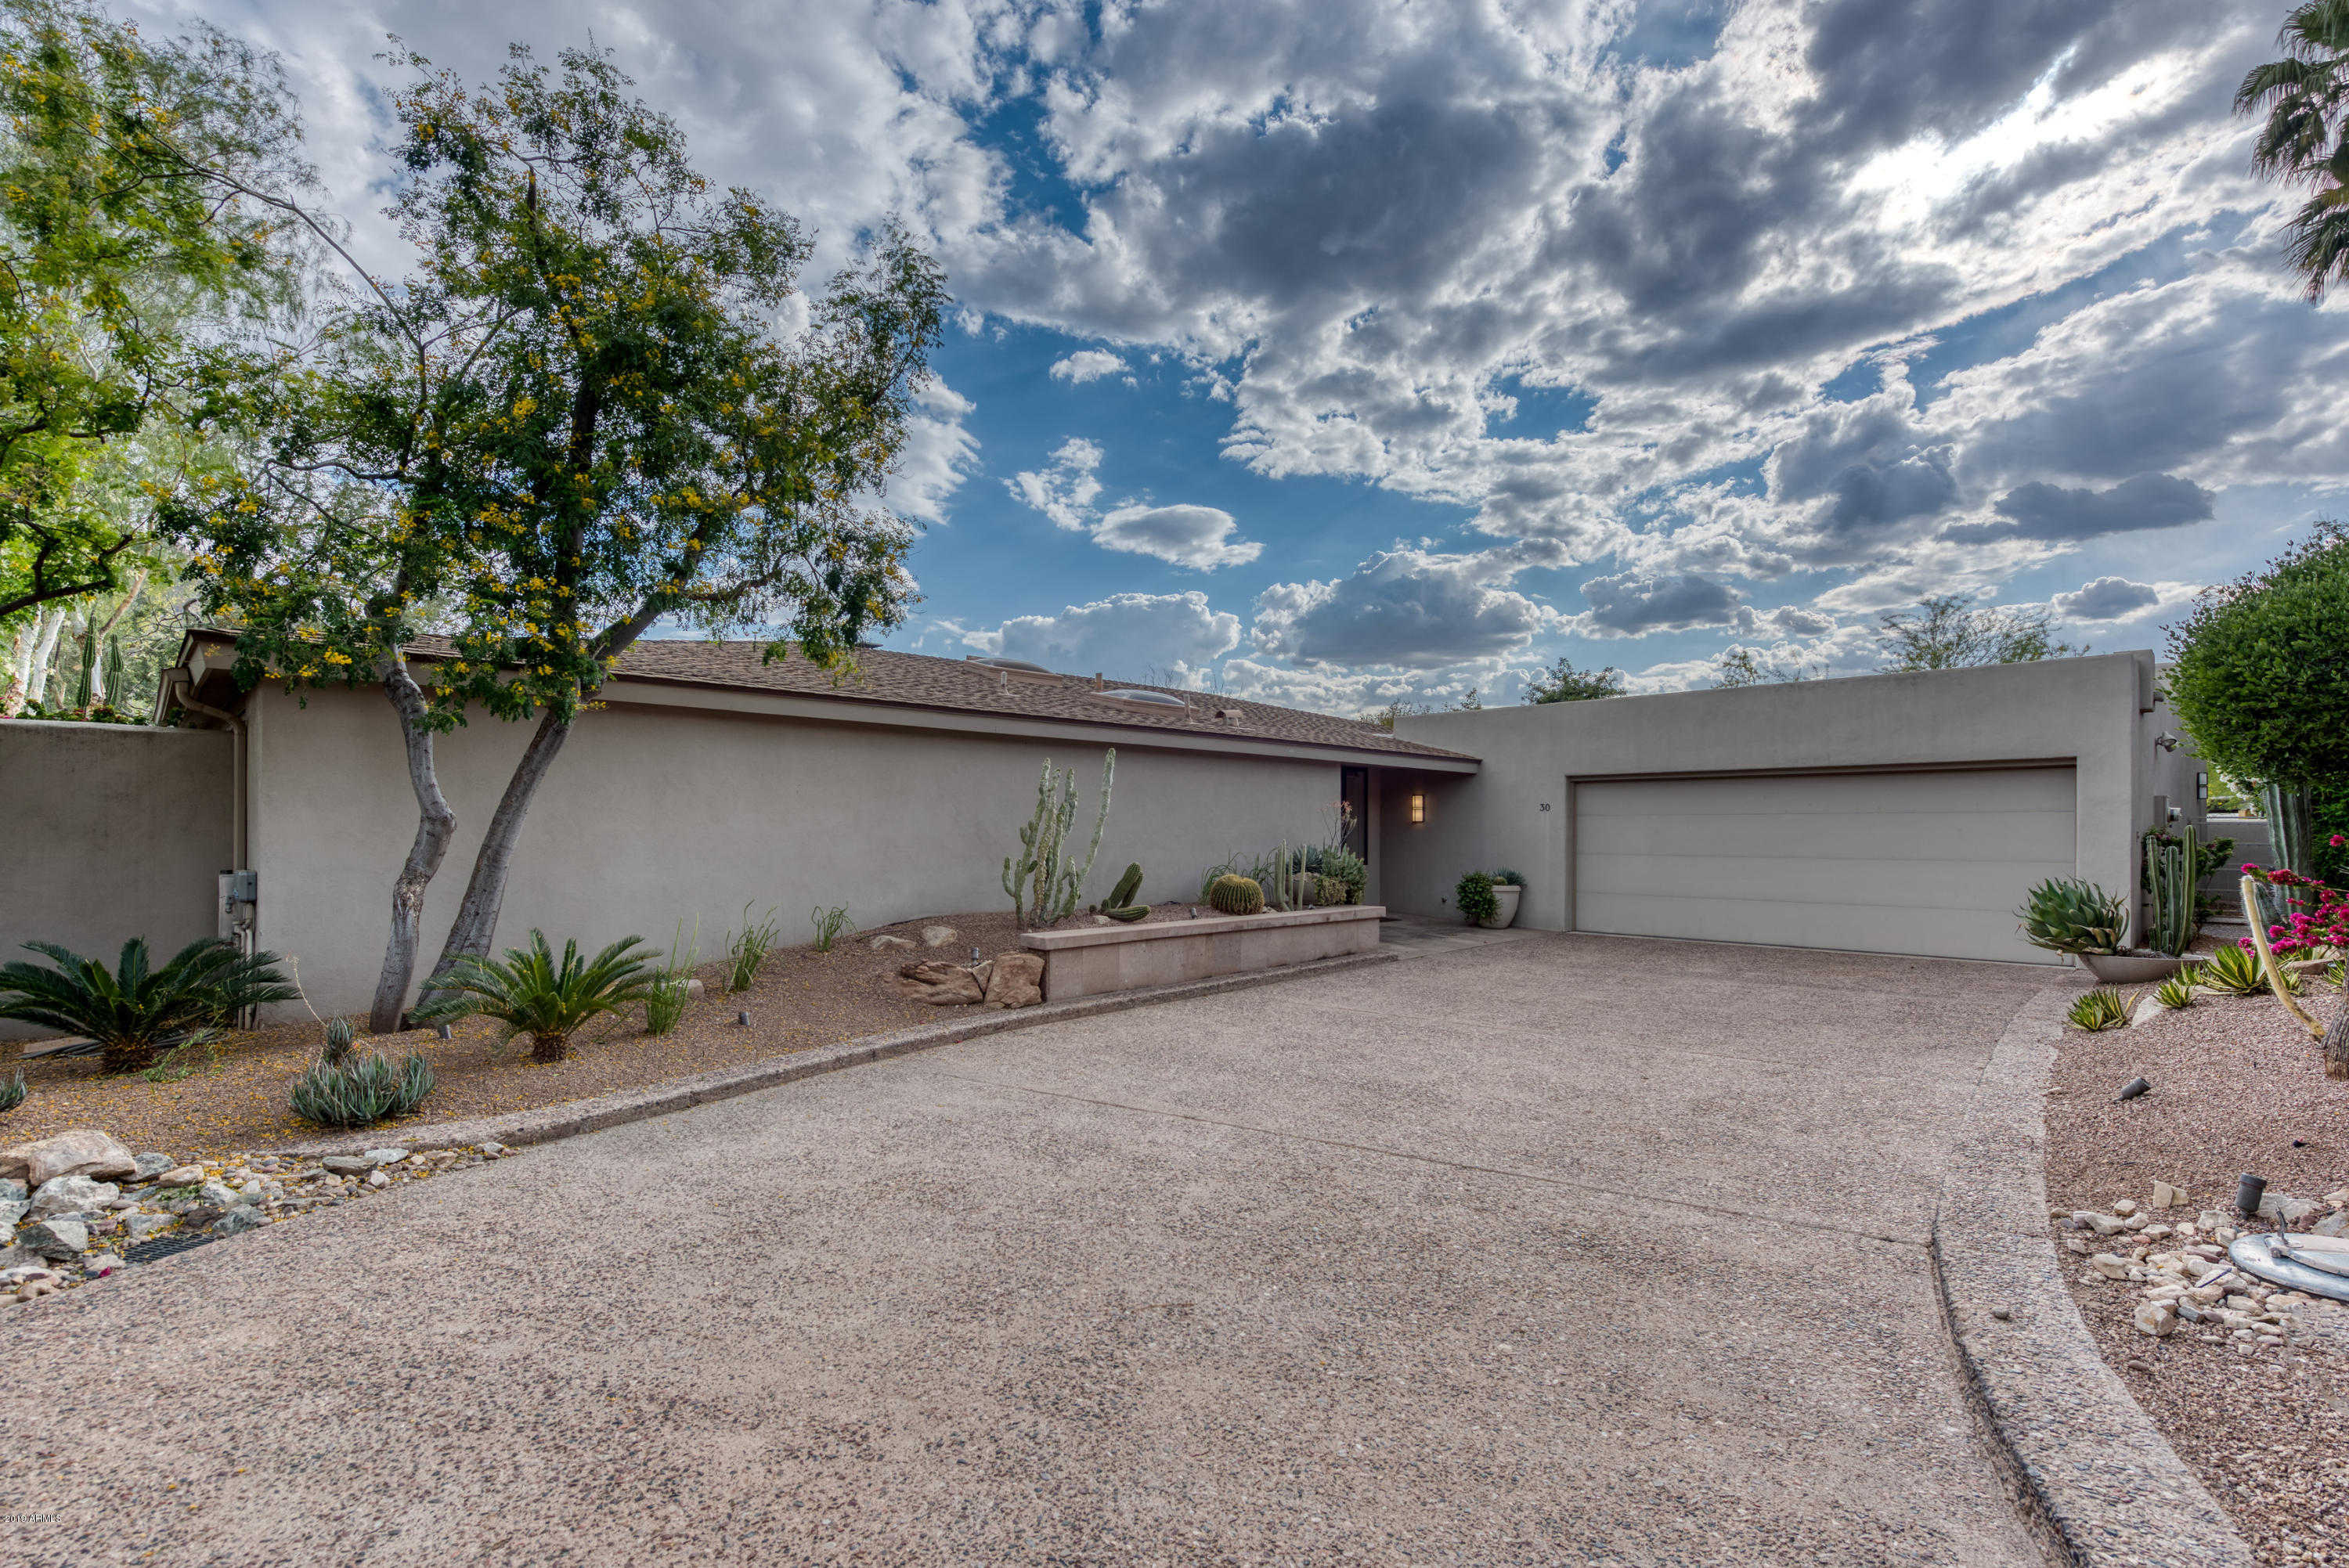 $1,590,000 - 3Br/3Ba - Home for Sale in Colonia Miramonte 2, Paradise Valley